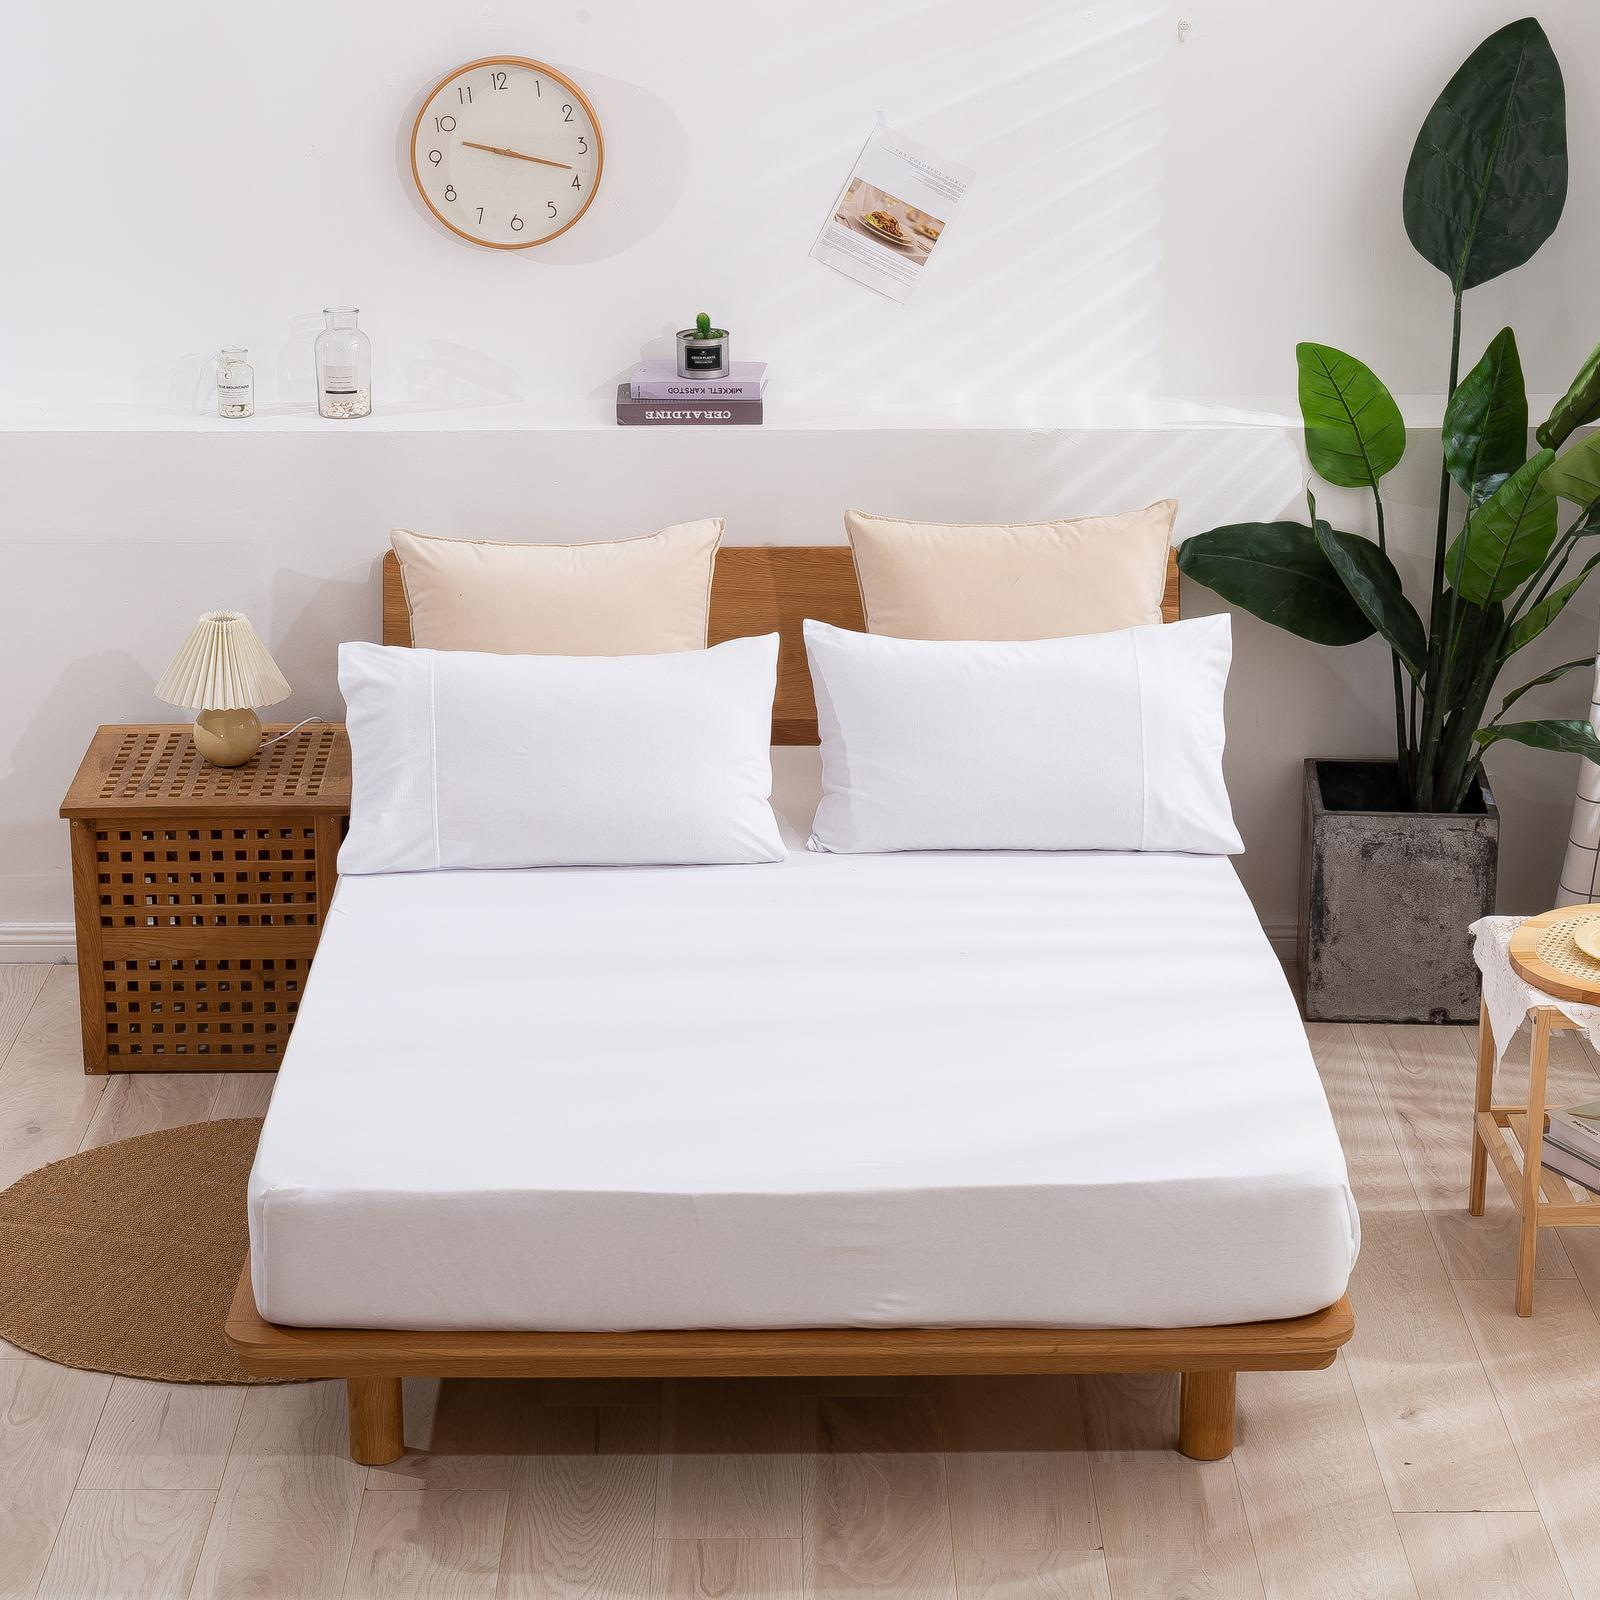 Dreamaker Cotton Jersey fitted sheet White